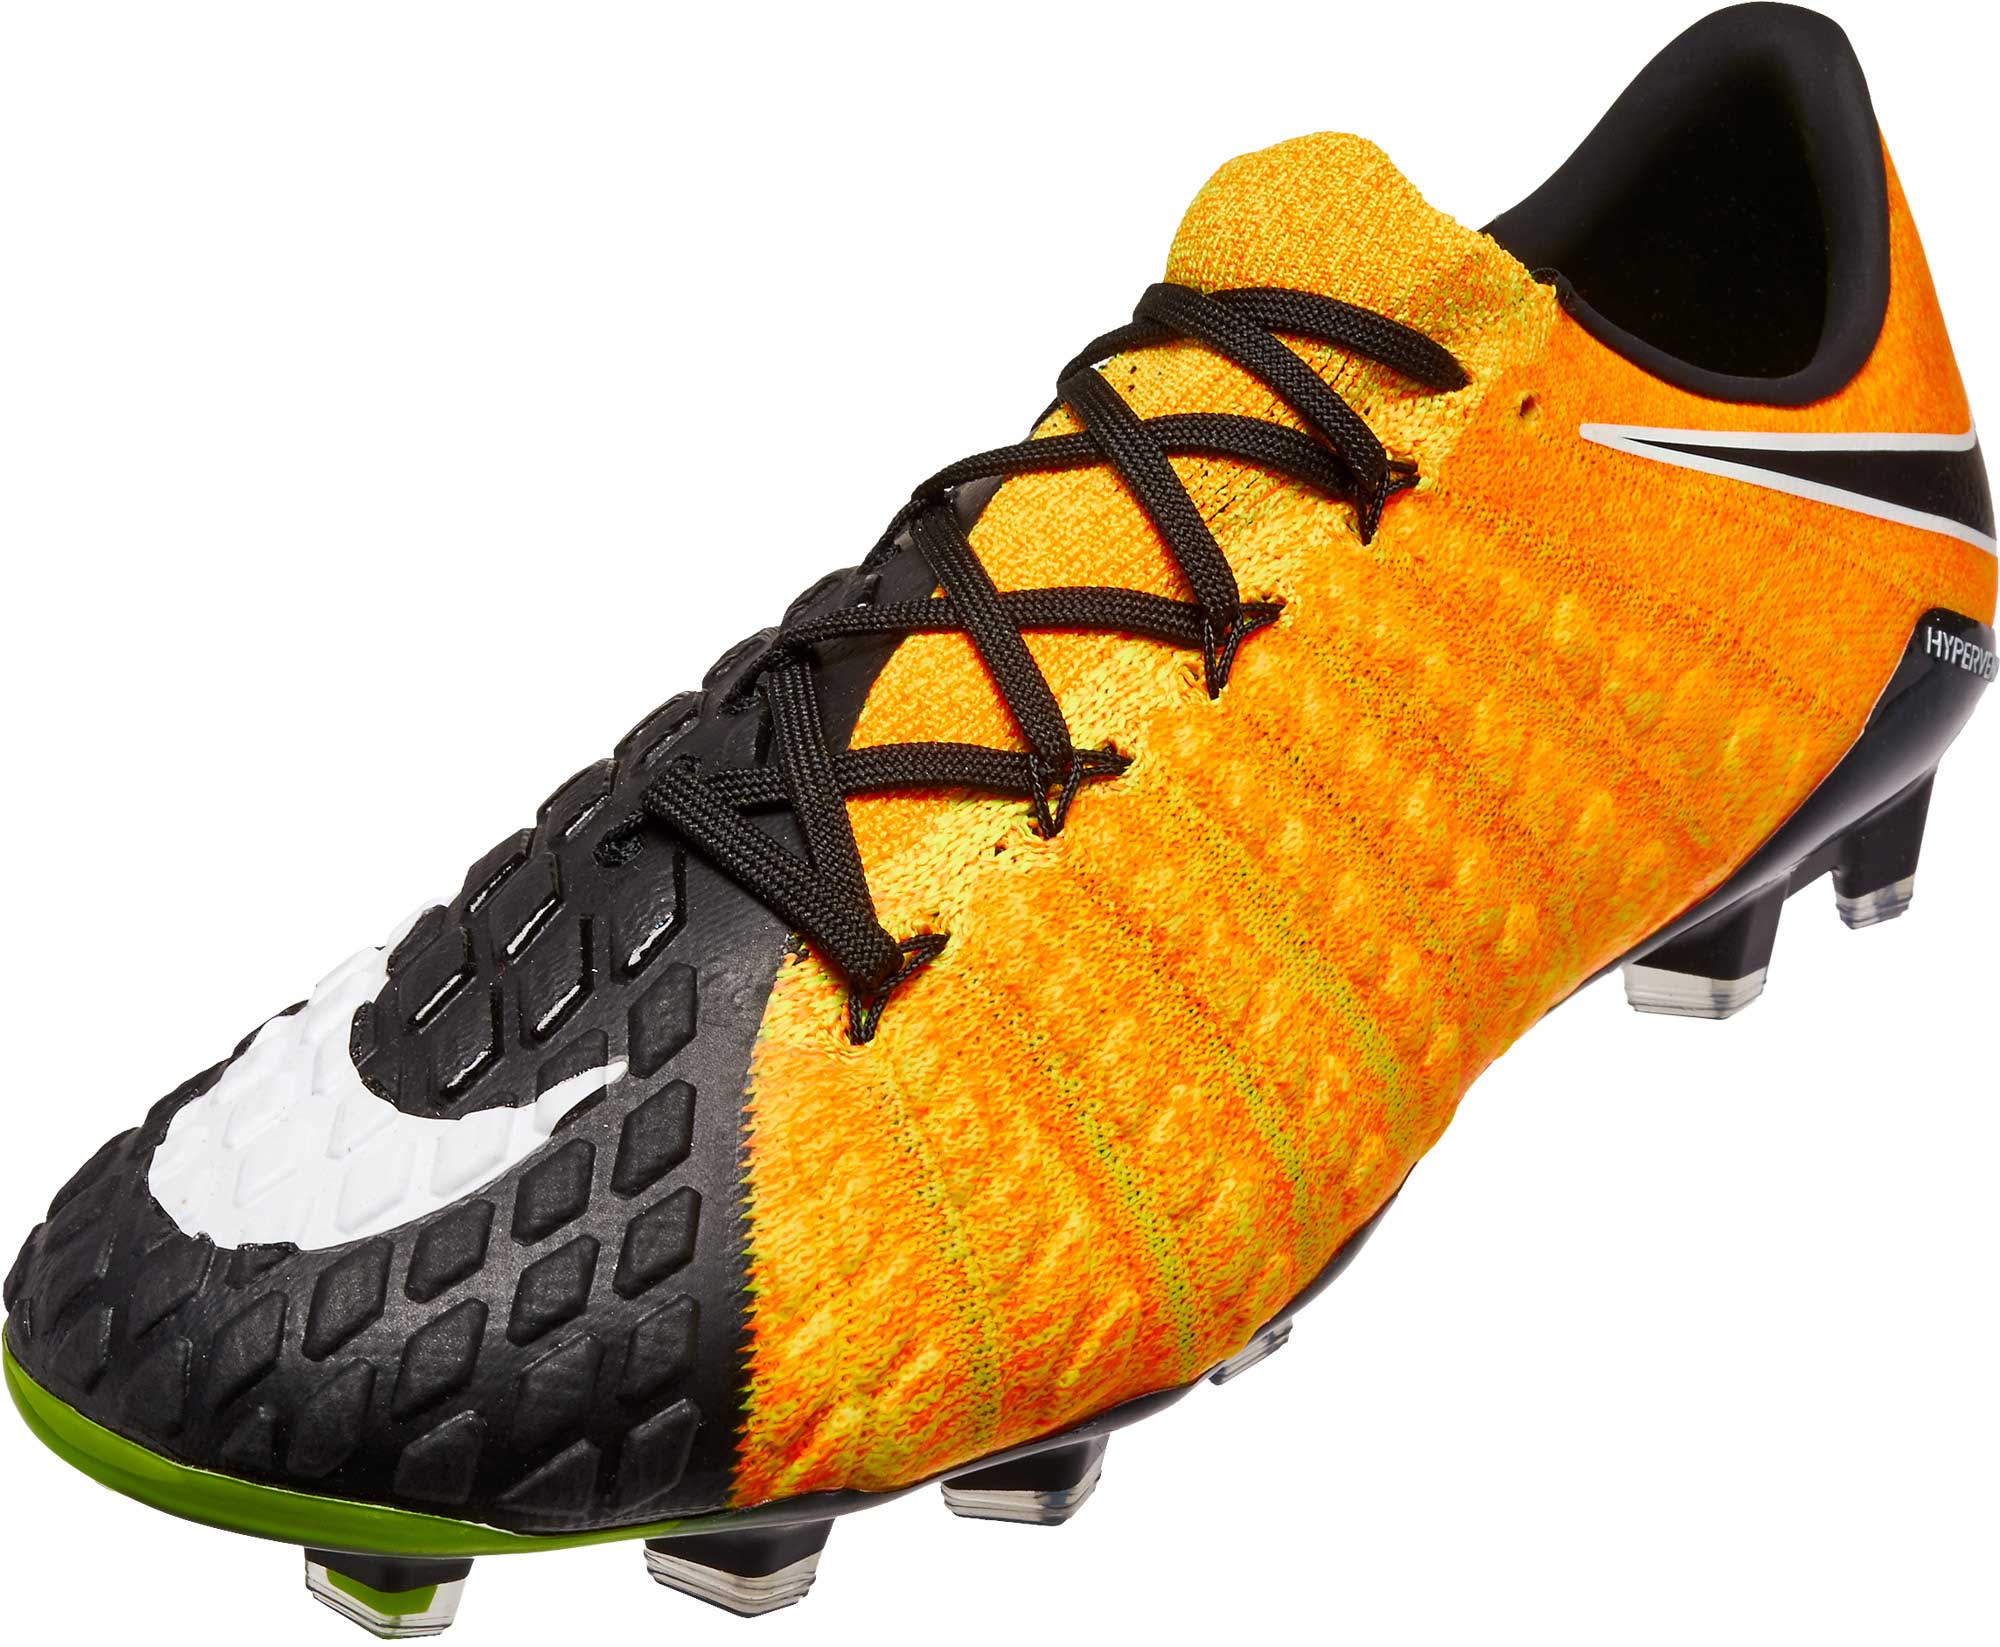 480cc74968e2 Nike Hypervenom Phantom III FG – Laser Orange Black